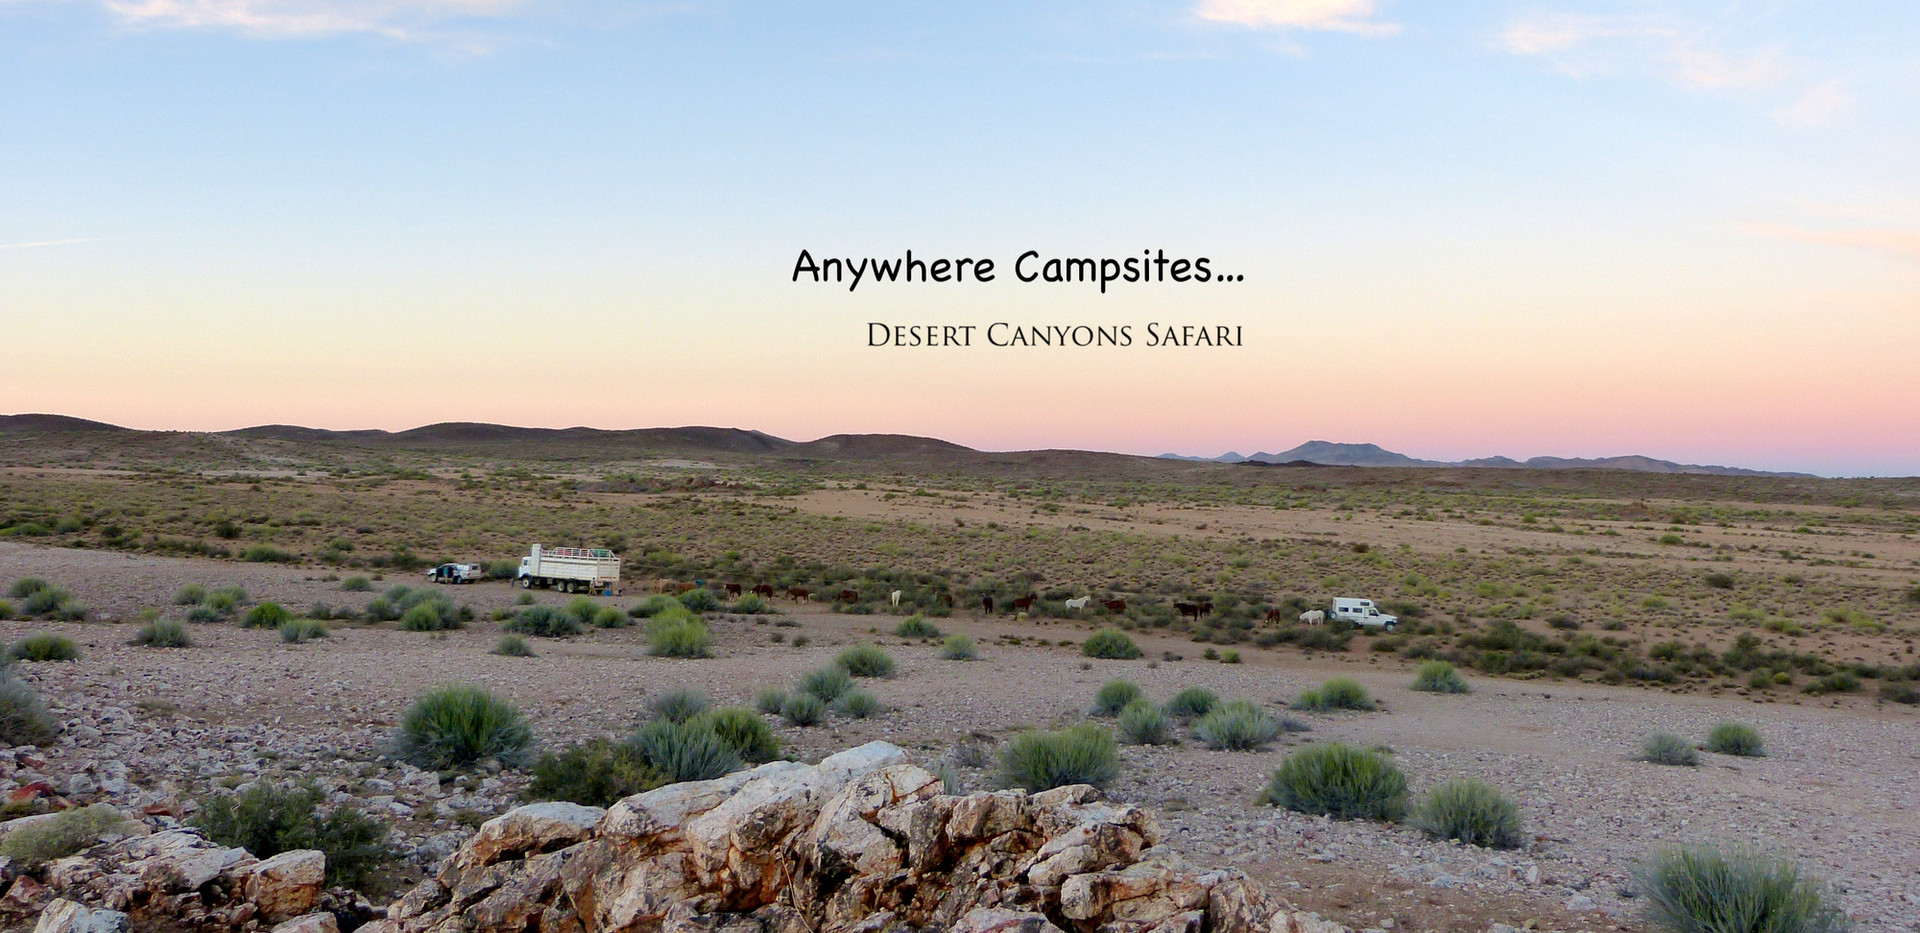 Camping anywhere